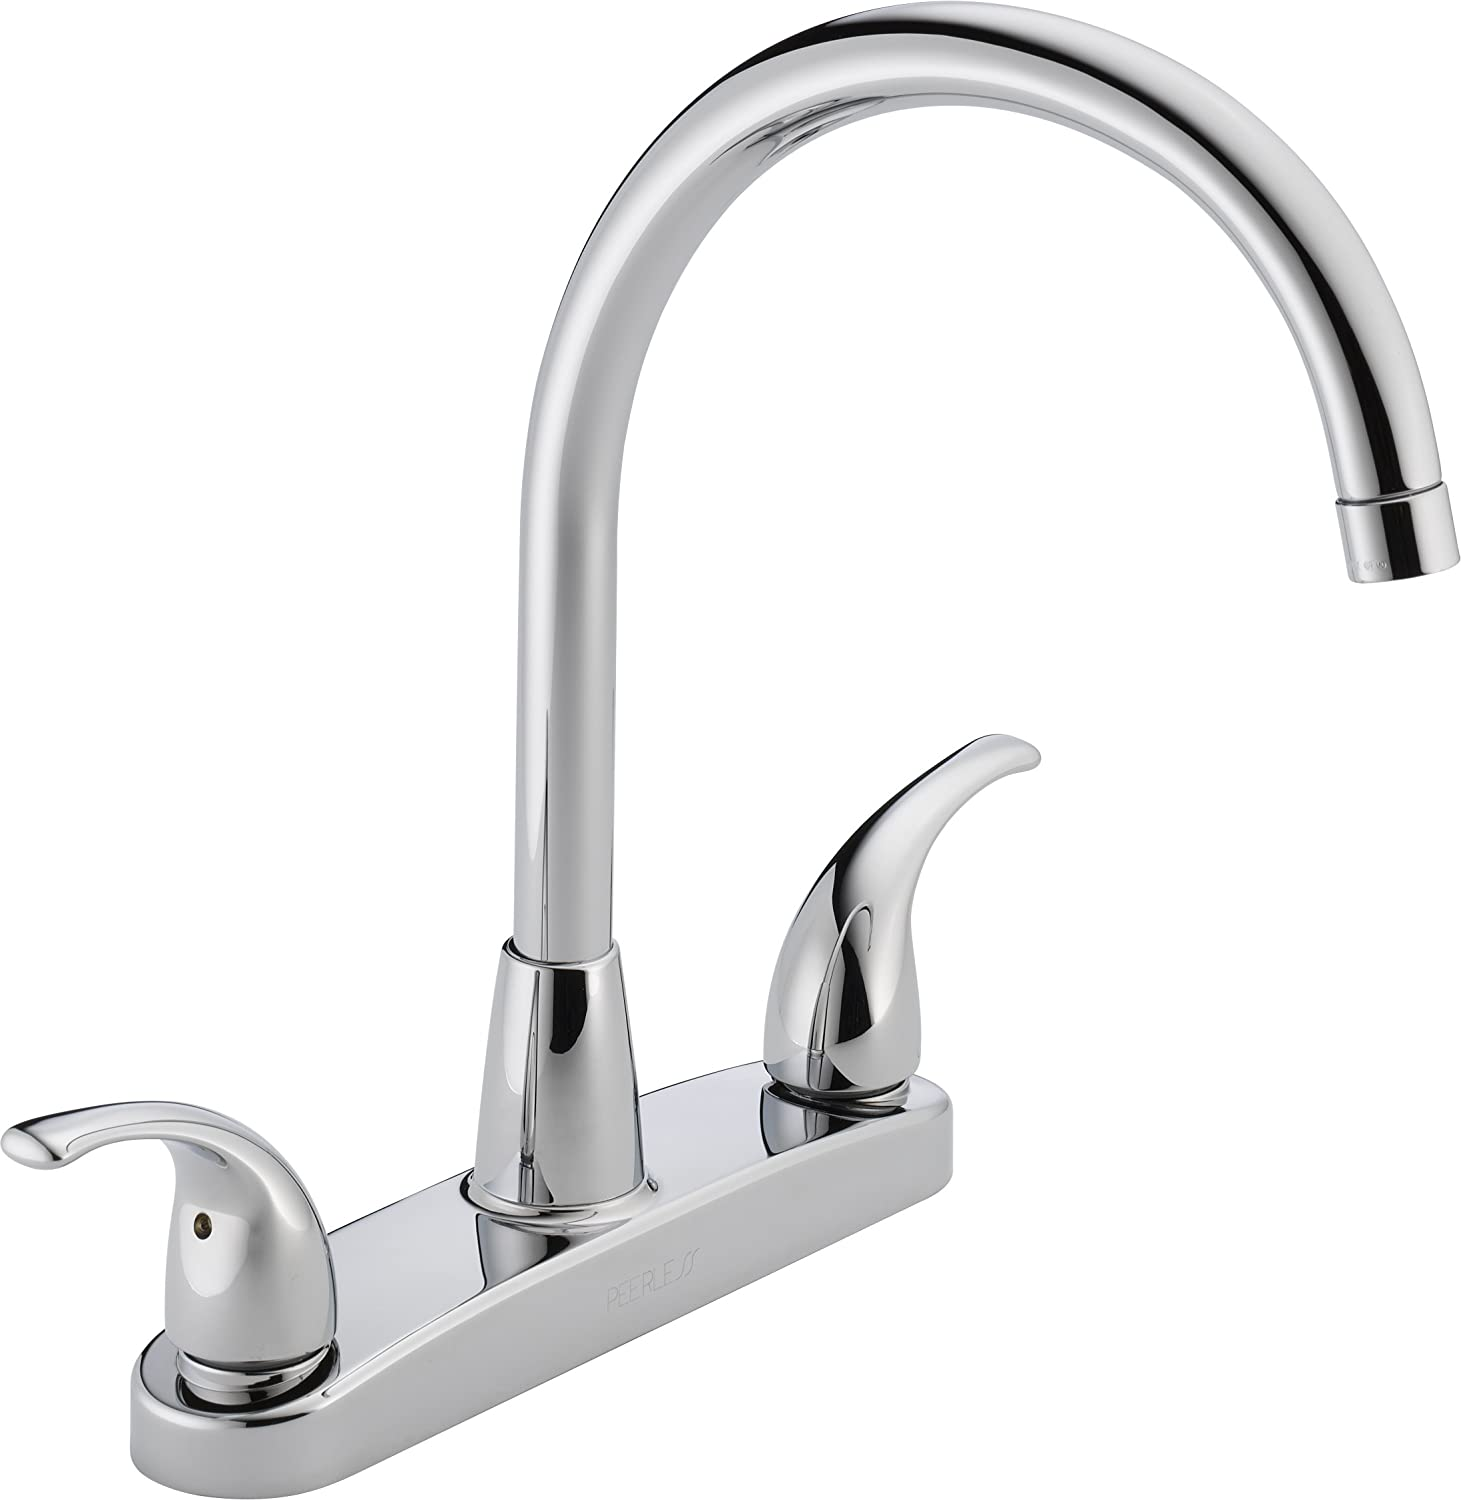 Peerless P299568LF Choice Two Handle Kitchen Faucet, Chrome   Touch On  Kitchen Sink Faucets   Amazon.com